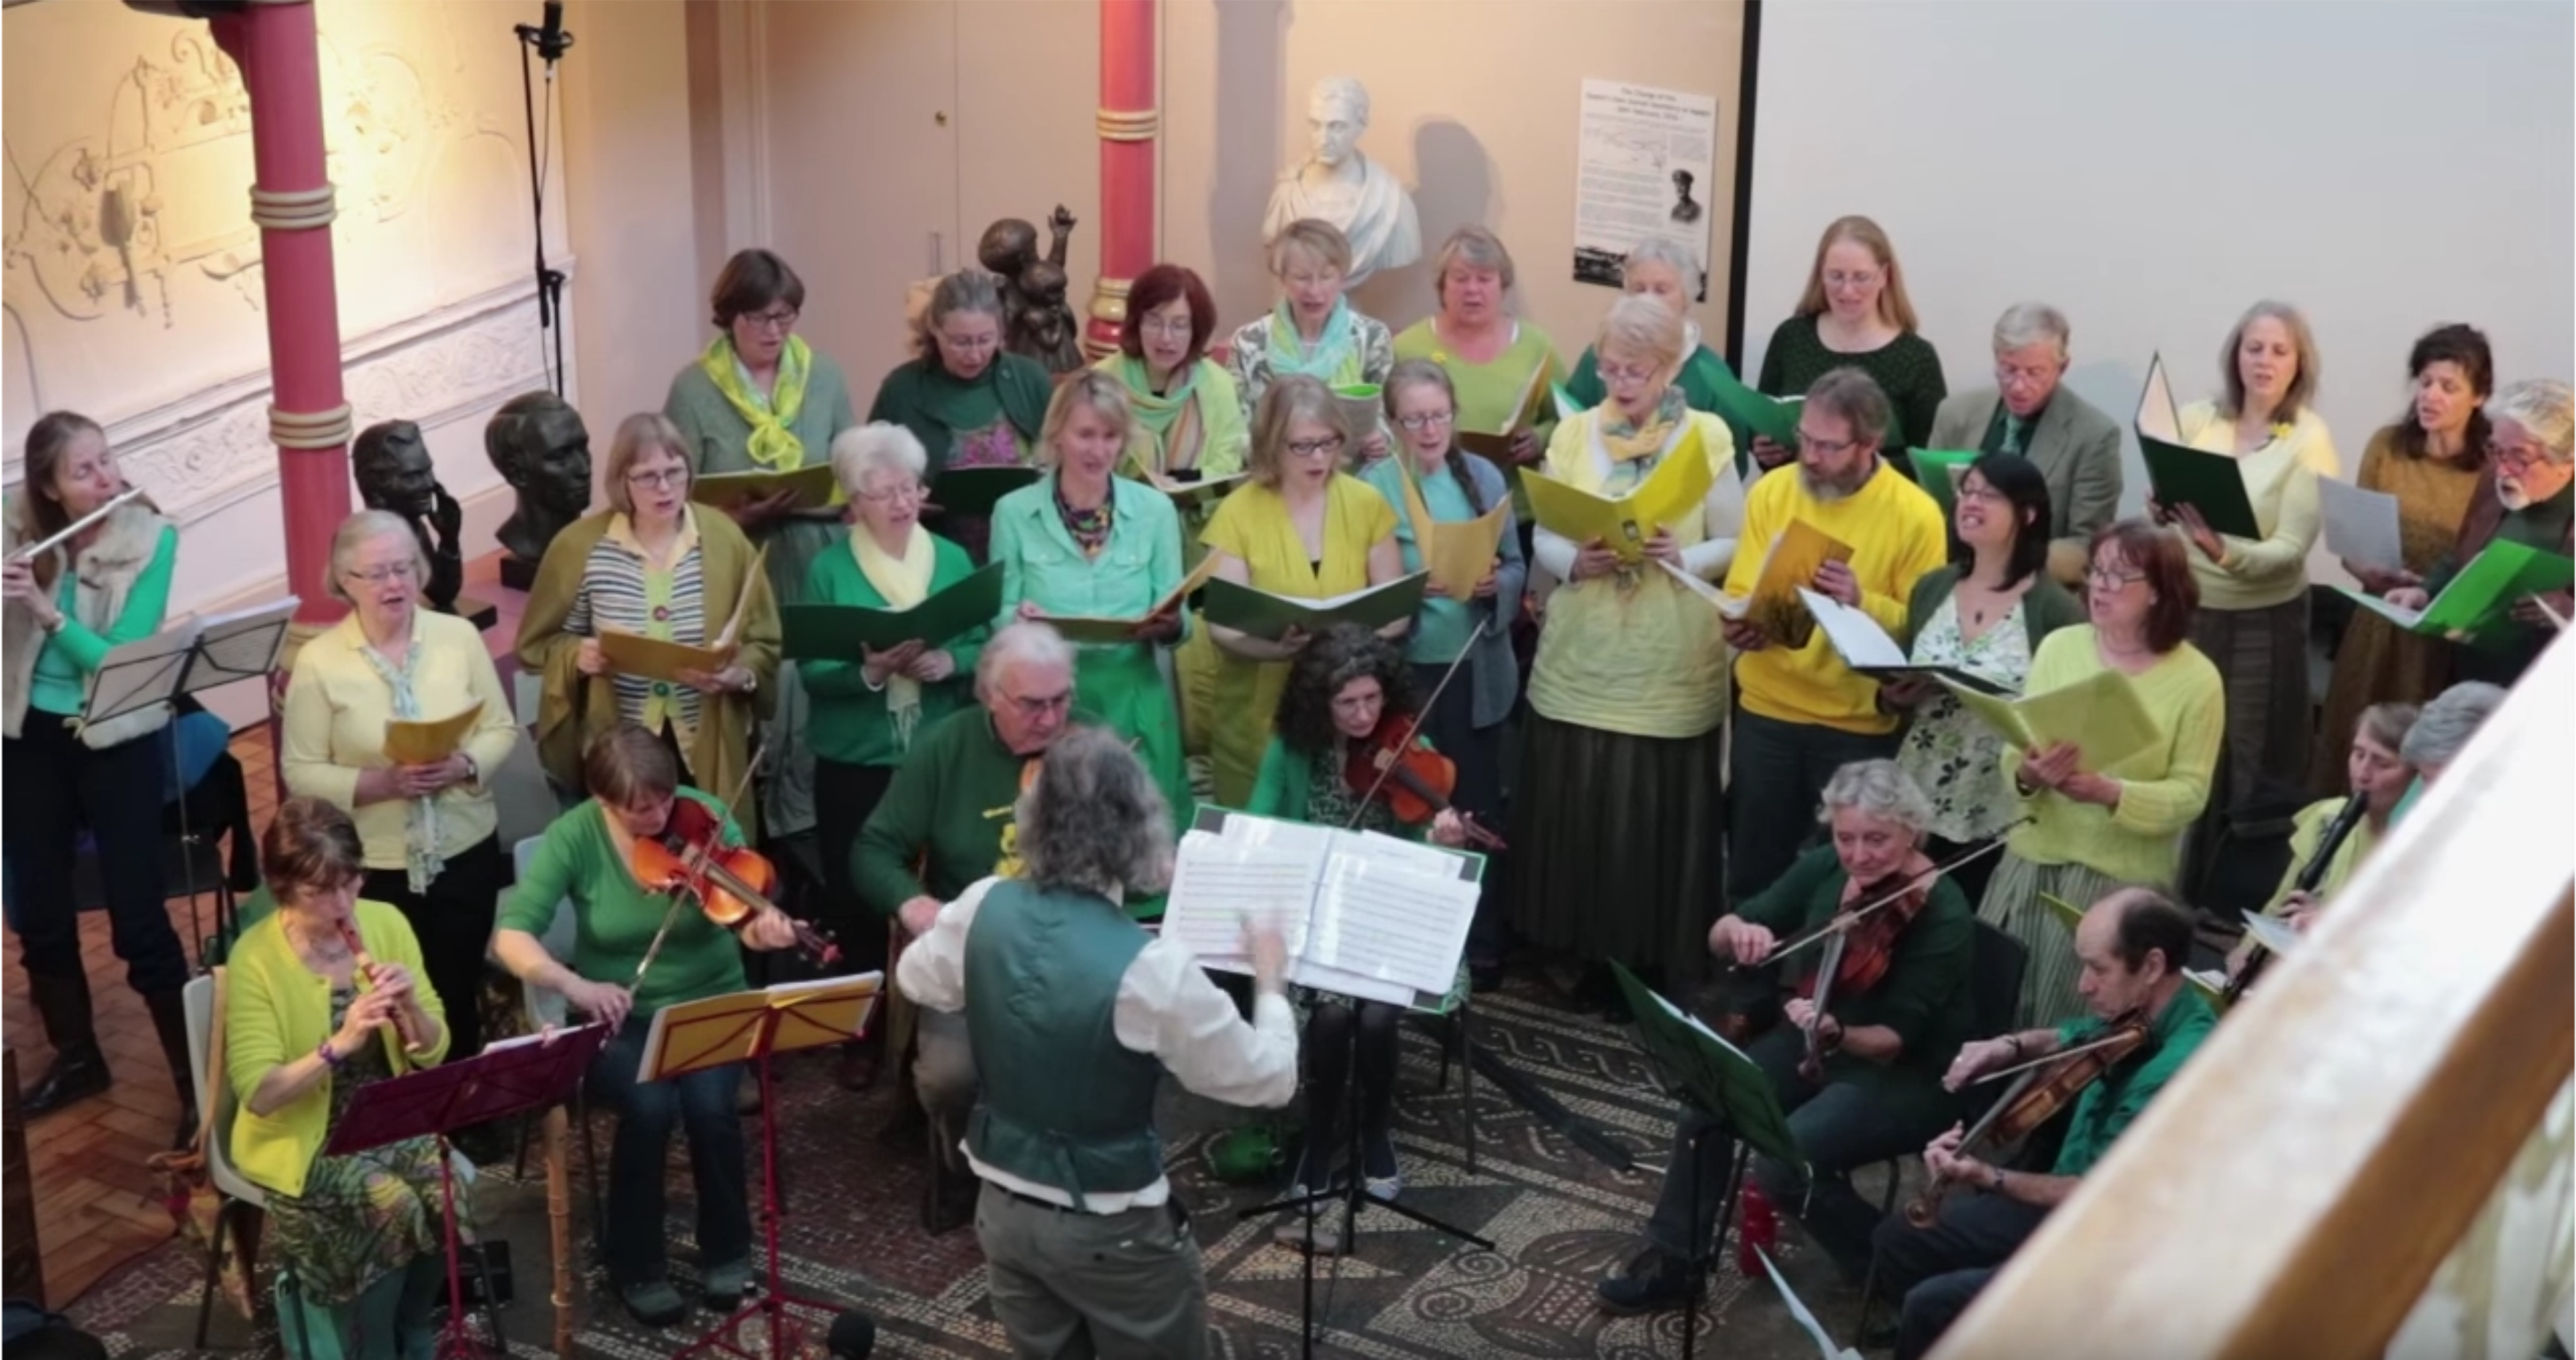 Group of singers and musicians dressed in green and yellow